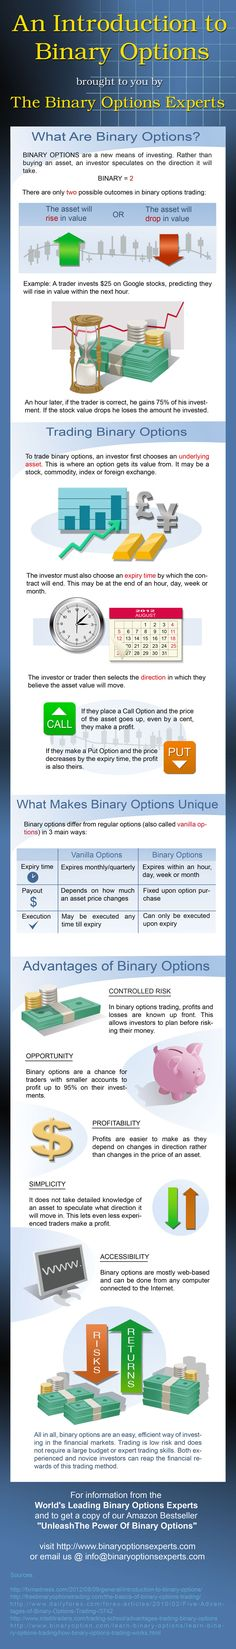 Binary options info graphics design free betting system for horses